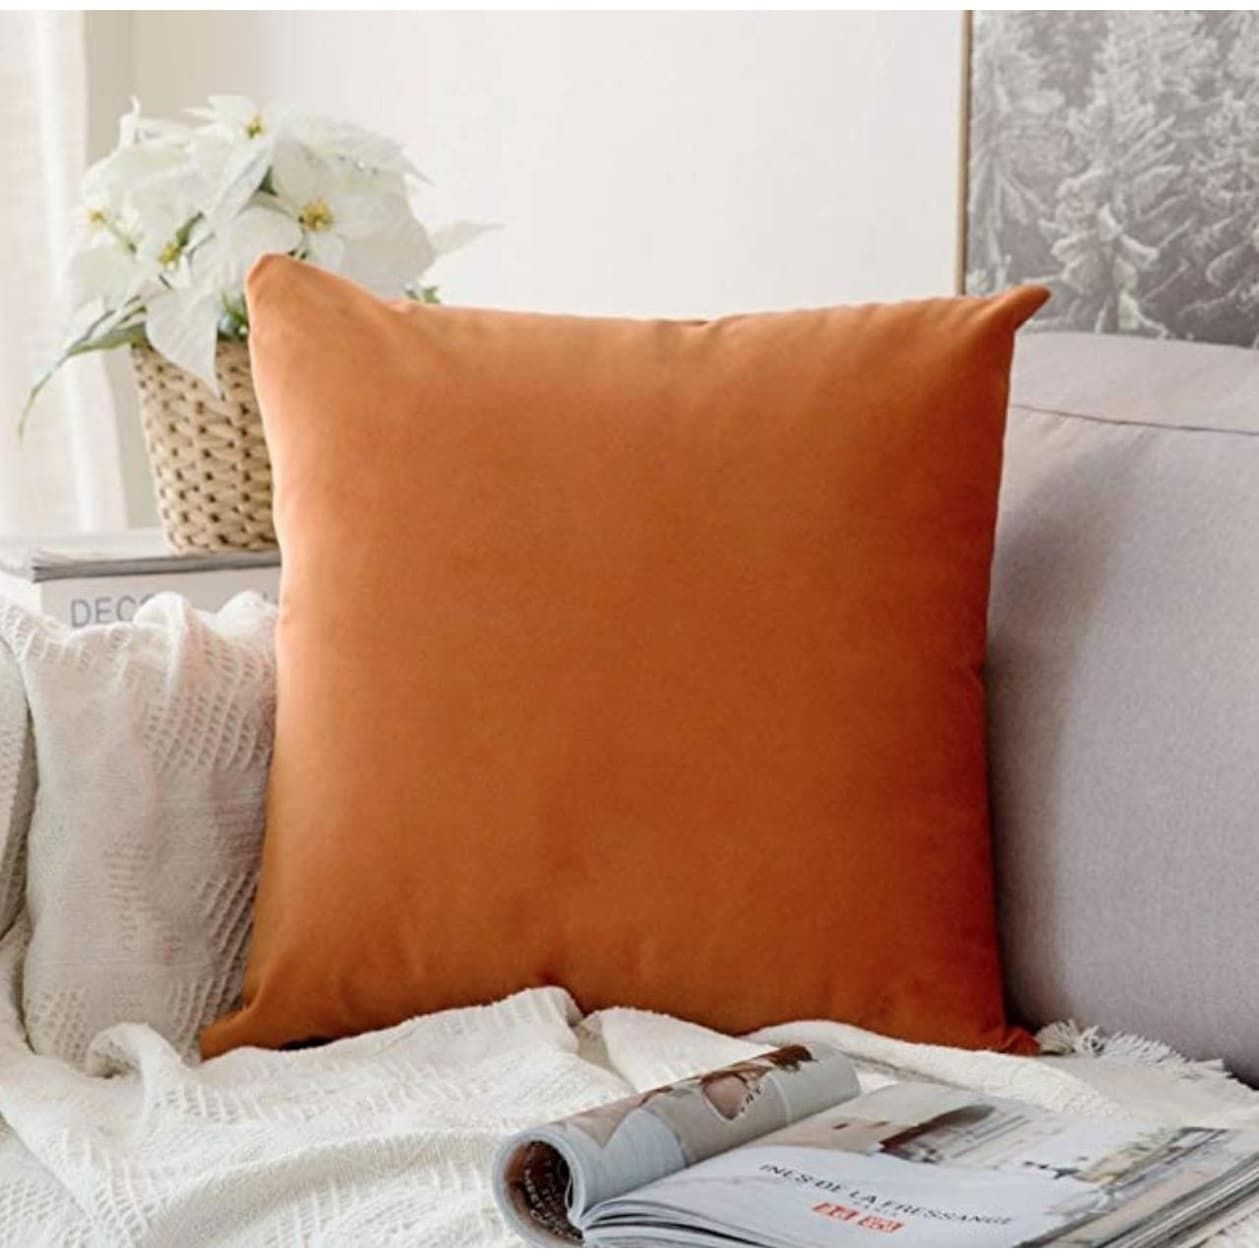 Velvet Soft Solid Orange Pillow Cover 20 X 20 Polyester Bedroom Sofa Orange Pillows Pillows